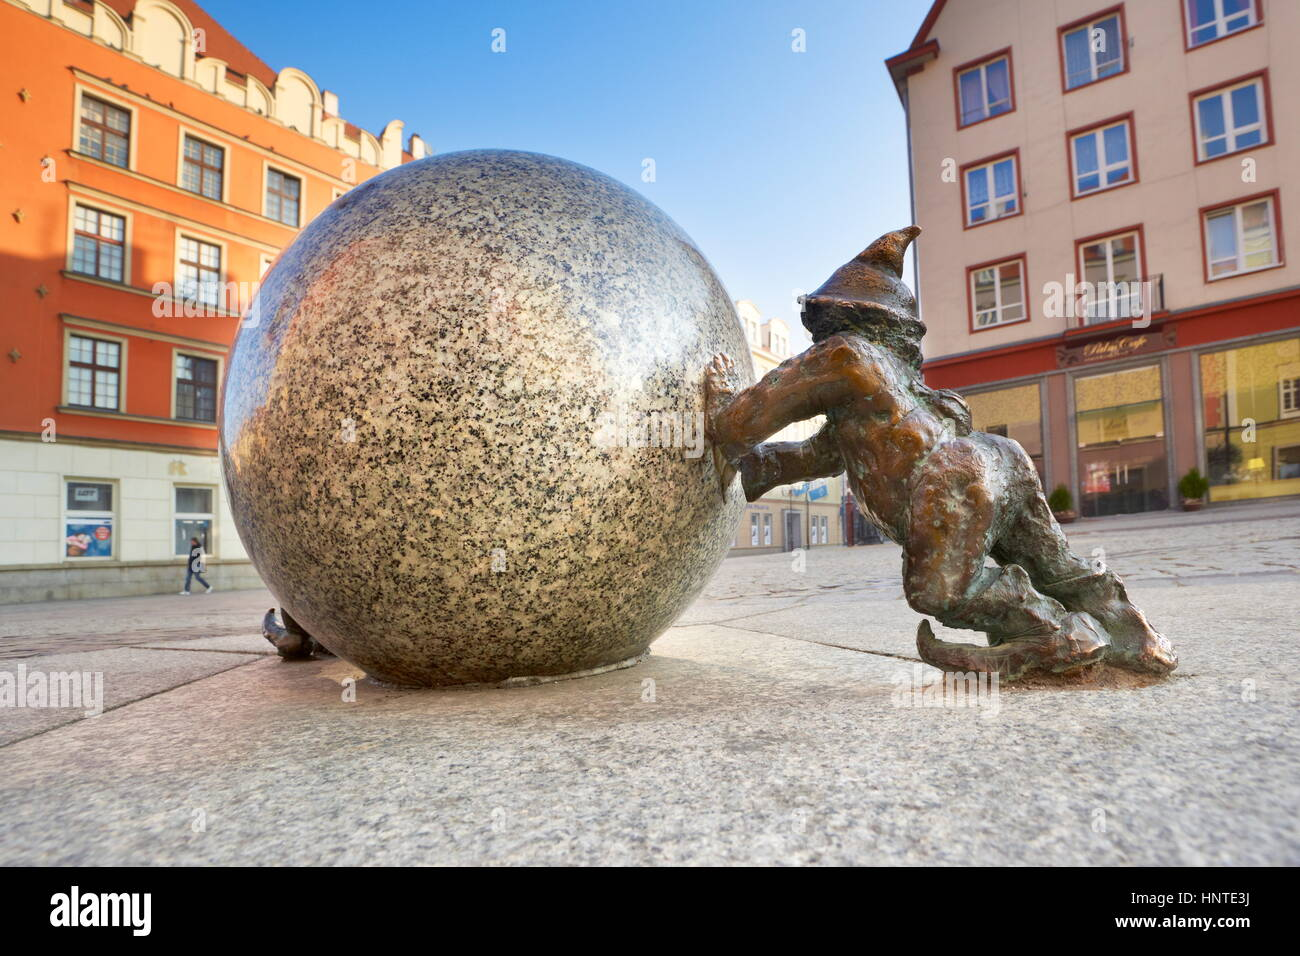 Wroclaw Dwarf (small street sculptures), Wroclaw, Poland, Europe - Stock Image